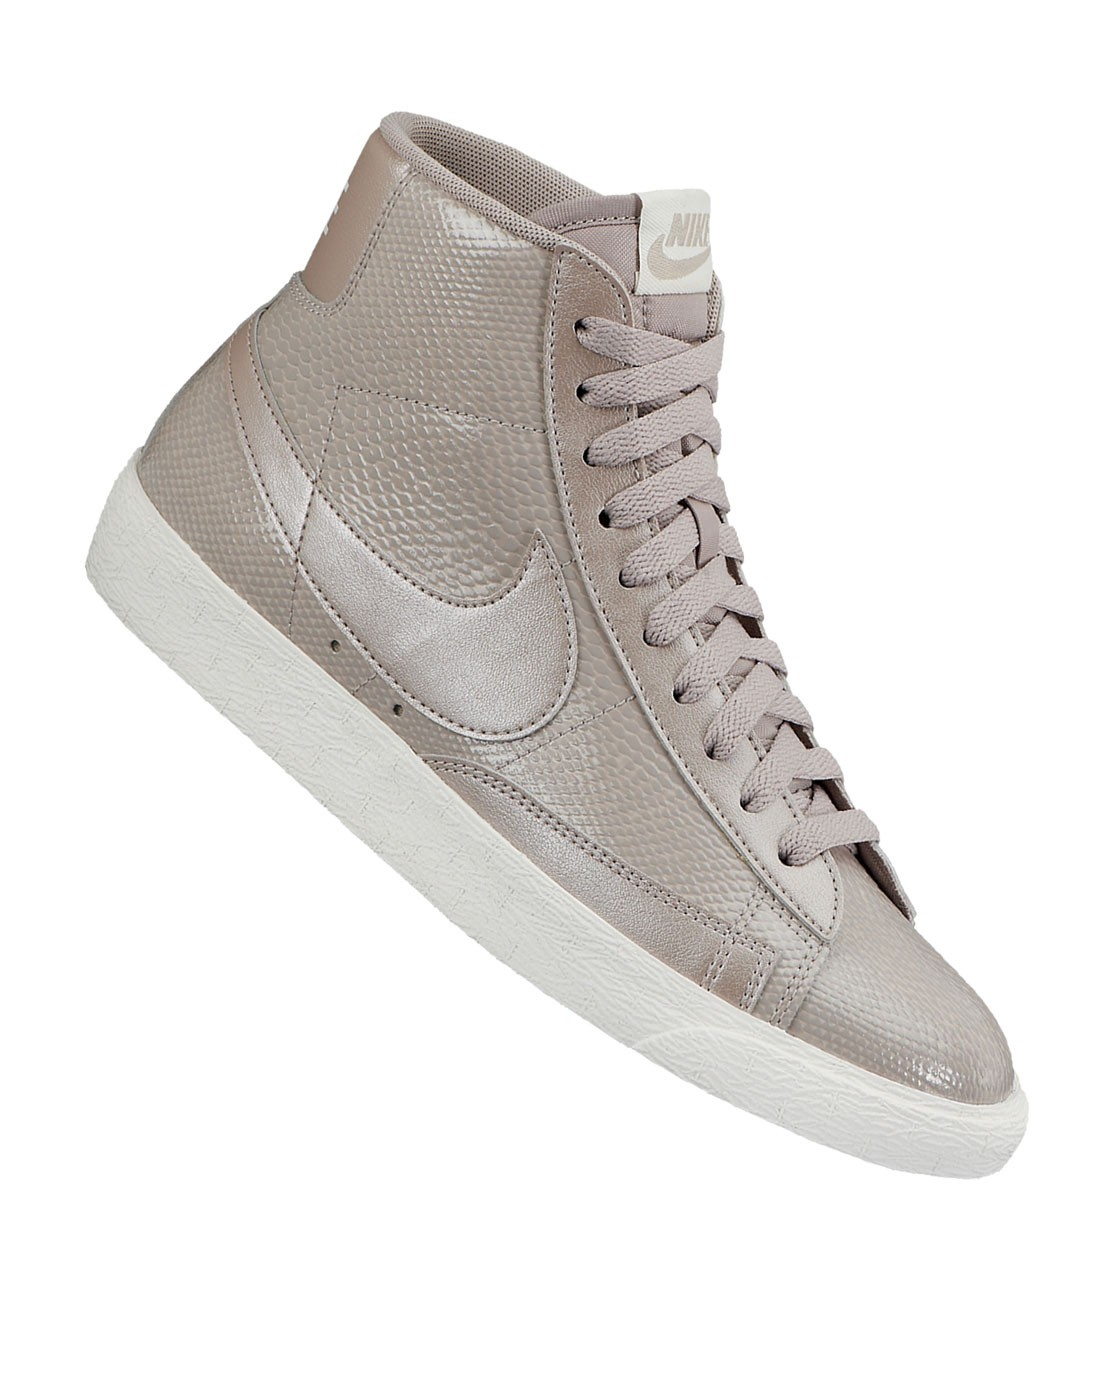 on sale 59d63 33e0e Price $60 Nike Blazer Mid Leather Premium (Ltr Prm) 685225 ...